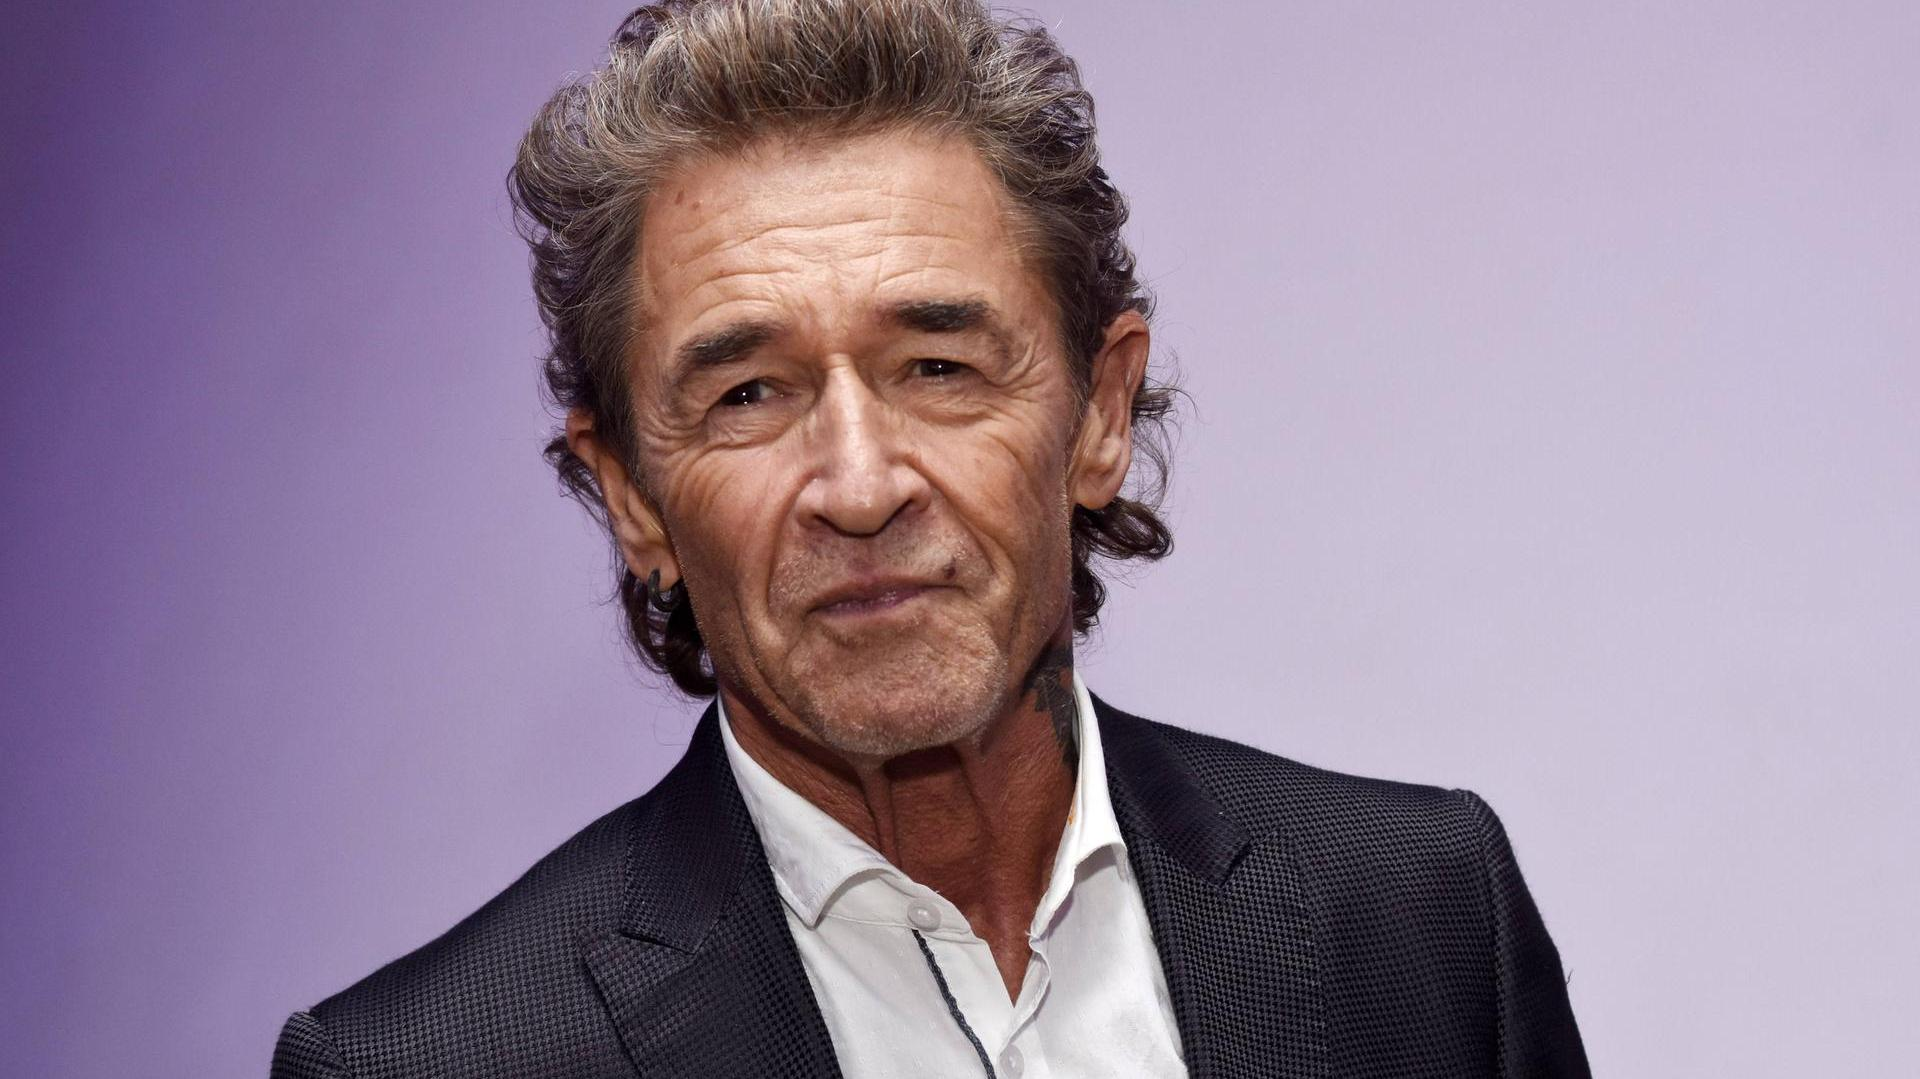 peter maffay im interview man muss sich immer wieder. Black Bedroom Furniture Sets. Home Design Ideas